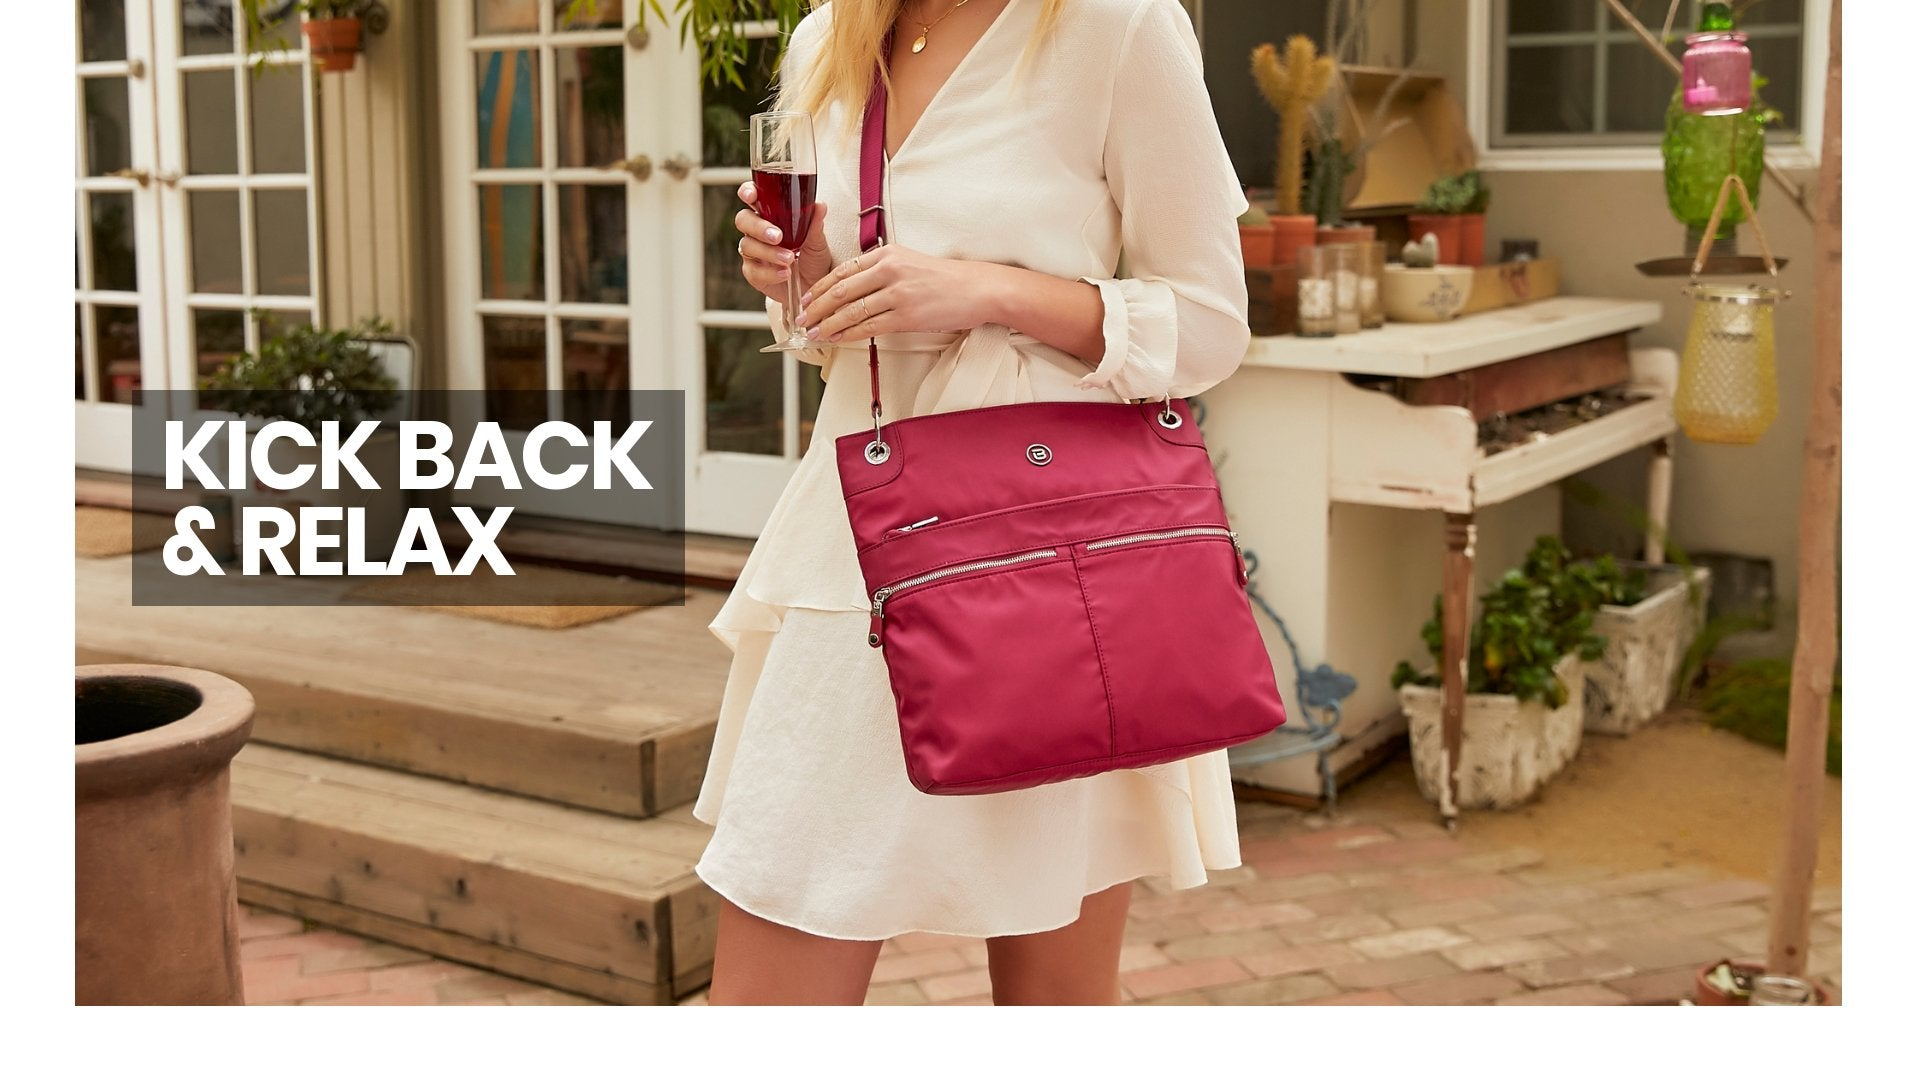 beside-u BNUA1903-2G1 Amado Cool Magenta crossbody purses fashion handbags designer bags web banner